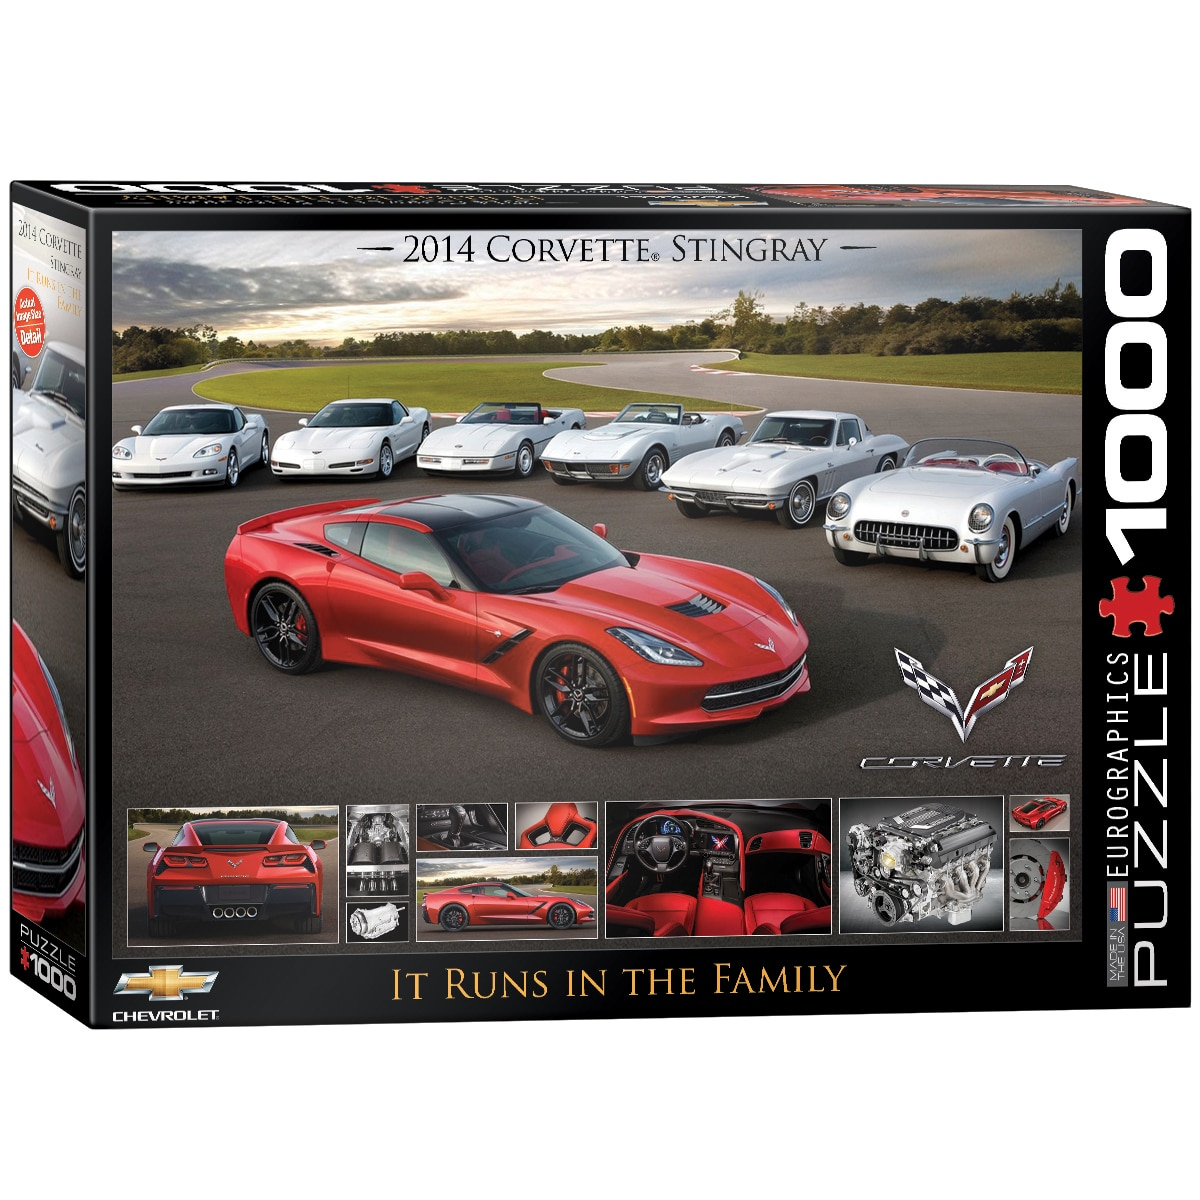 2014 Corvette Stingray: It Runs in the Family - 1000pc Jigsaw Puzzle by Eurographics